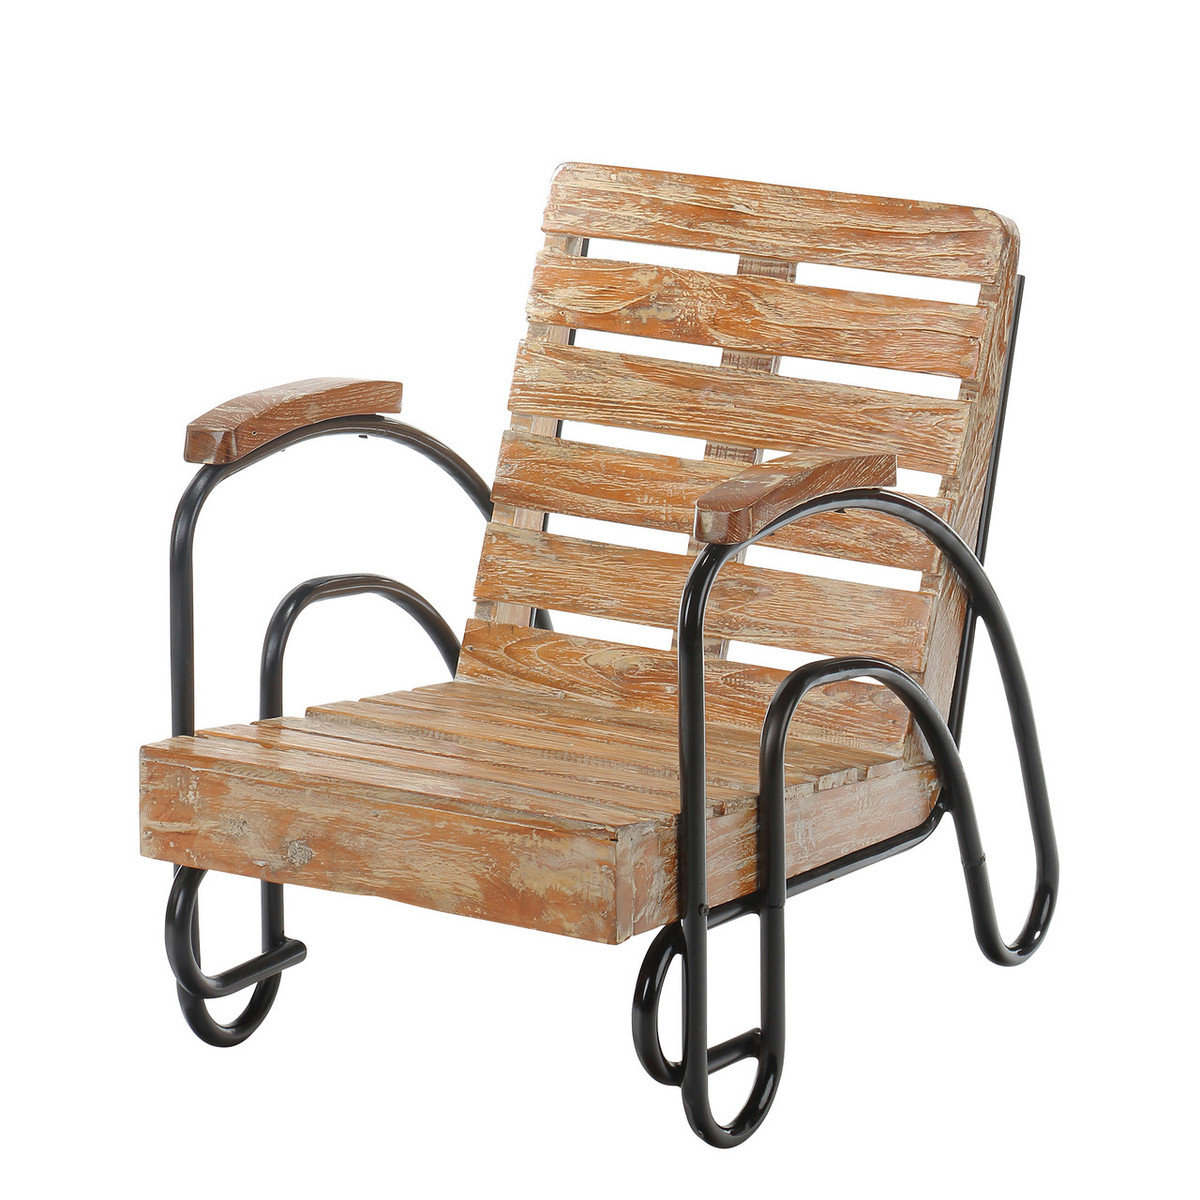 Children's Lounge Chair Kids Wood Slat Patio Lounge Chair Ja Ch Ws Kd Joseph Allen